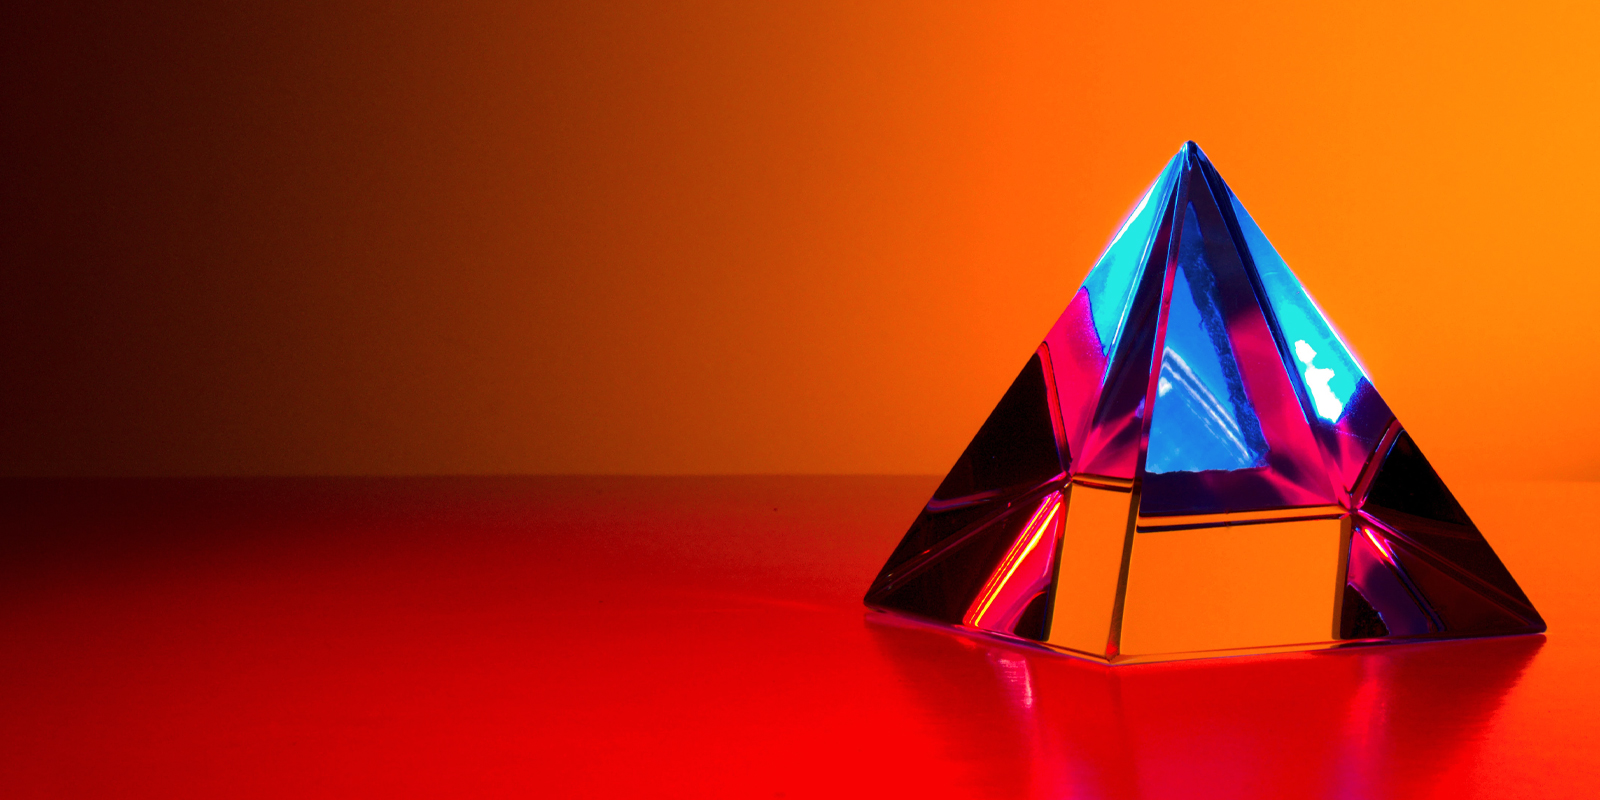 An image of a pyramid